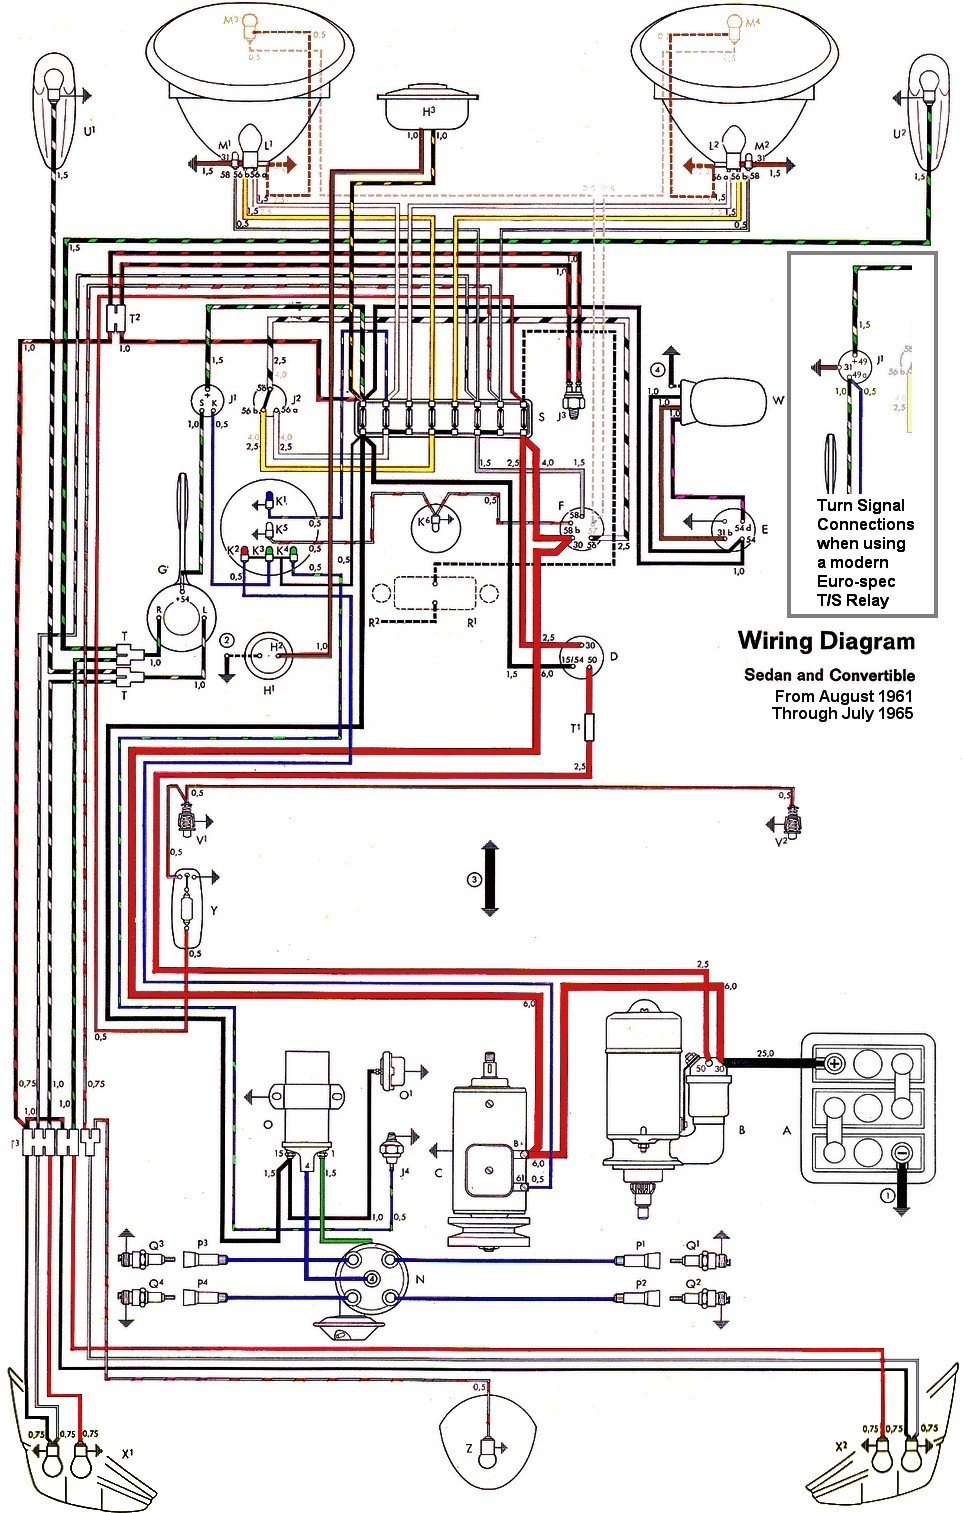 bug_62 65withinset wiring diagram vw beetle sedan and convertible 1961 1965 vw Electrical Wiring Diagrams at gsmx.co